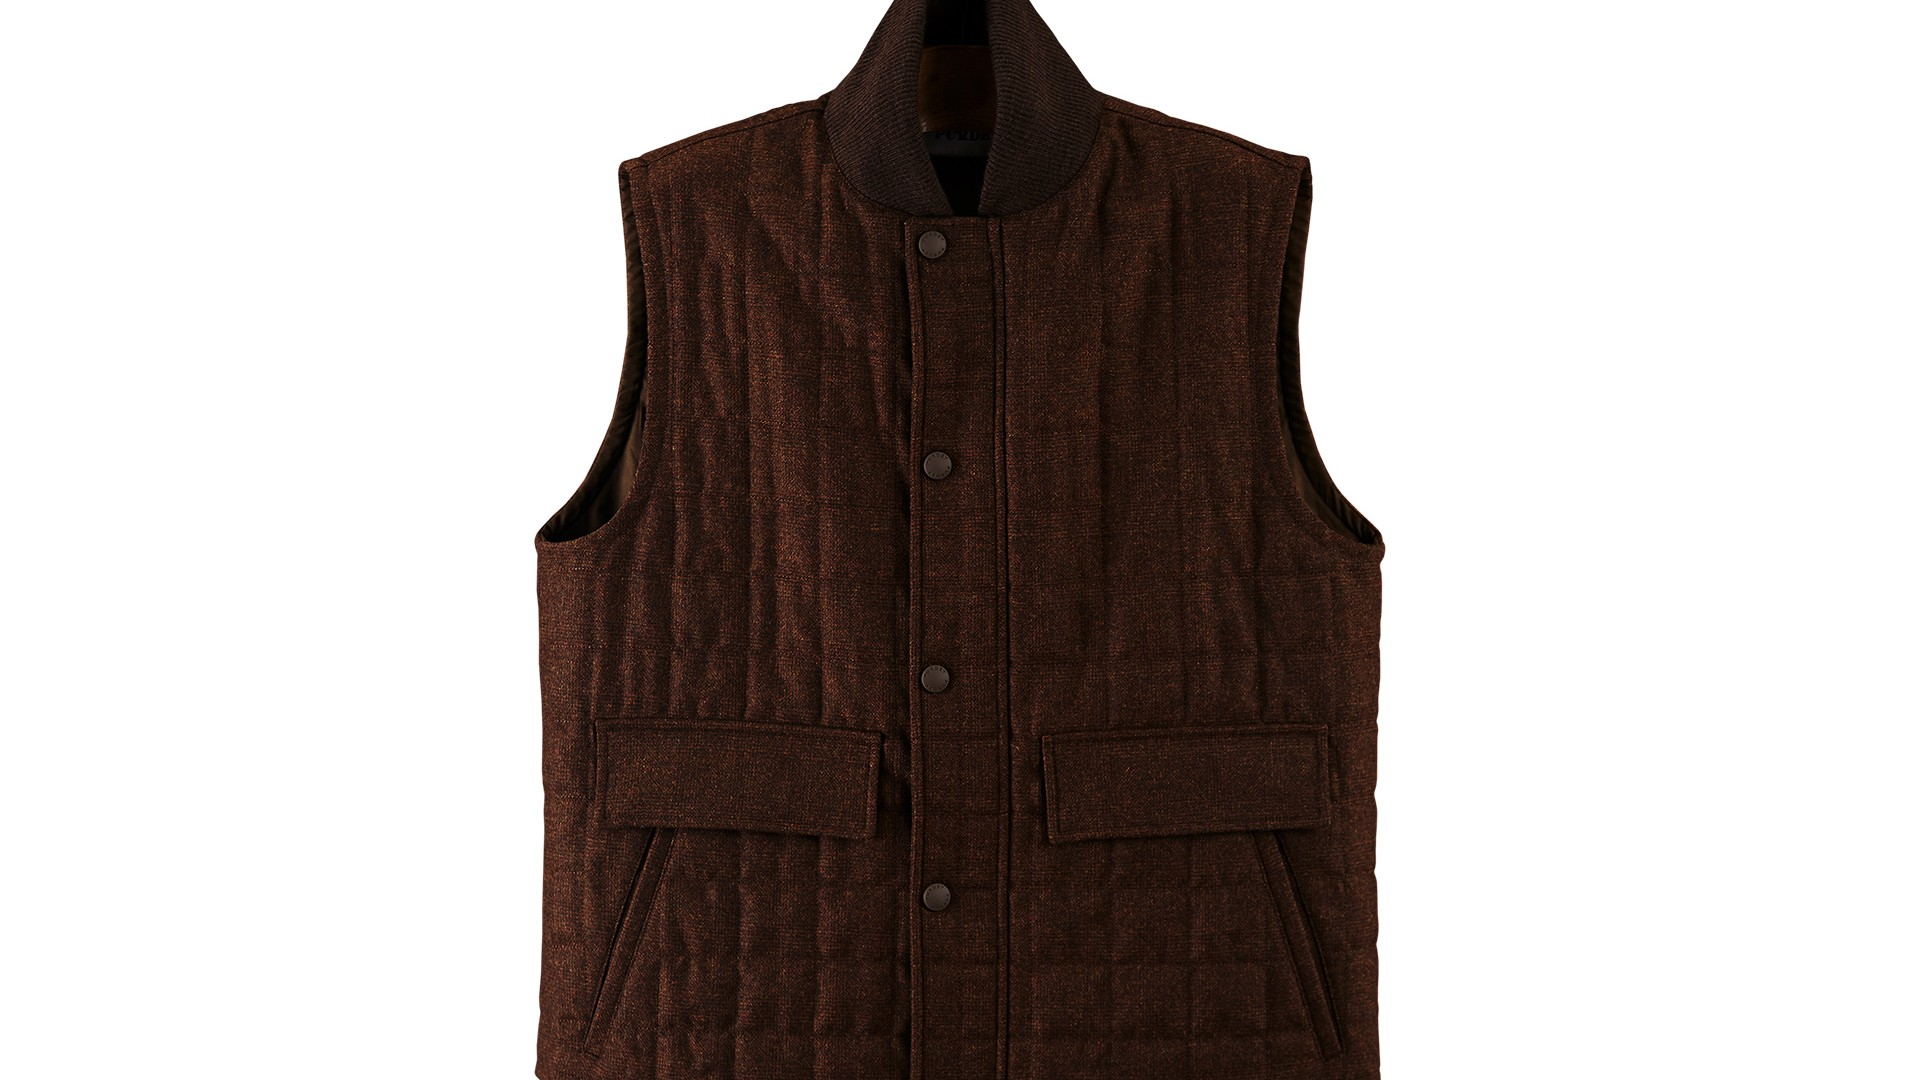 The Gillet: Purdey Quilted Tweed Body Warmer